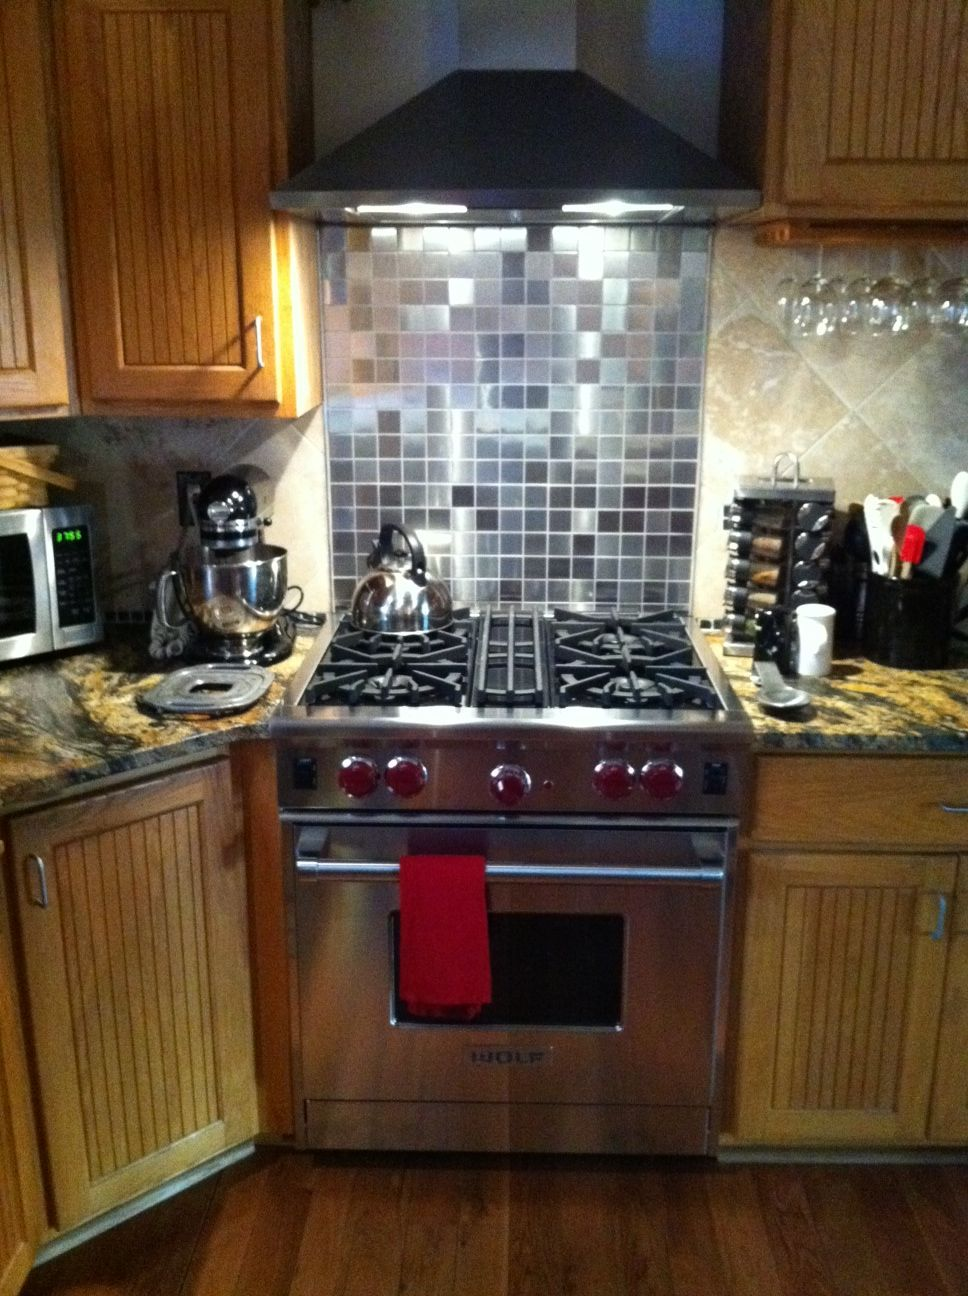 - My New Wolf Range With 2x2 Inch Stainless Steel Tile Backsplash